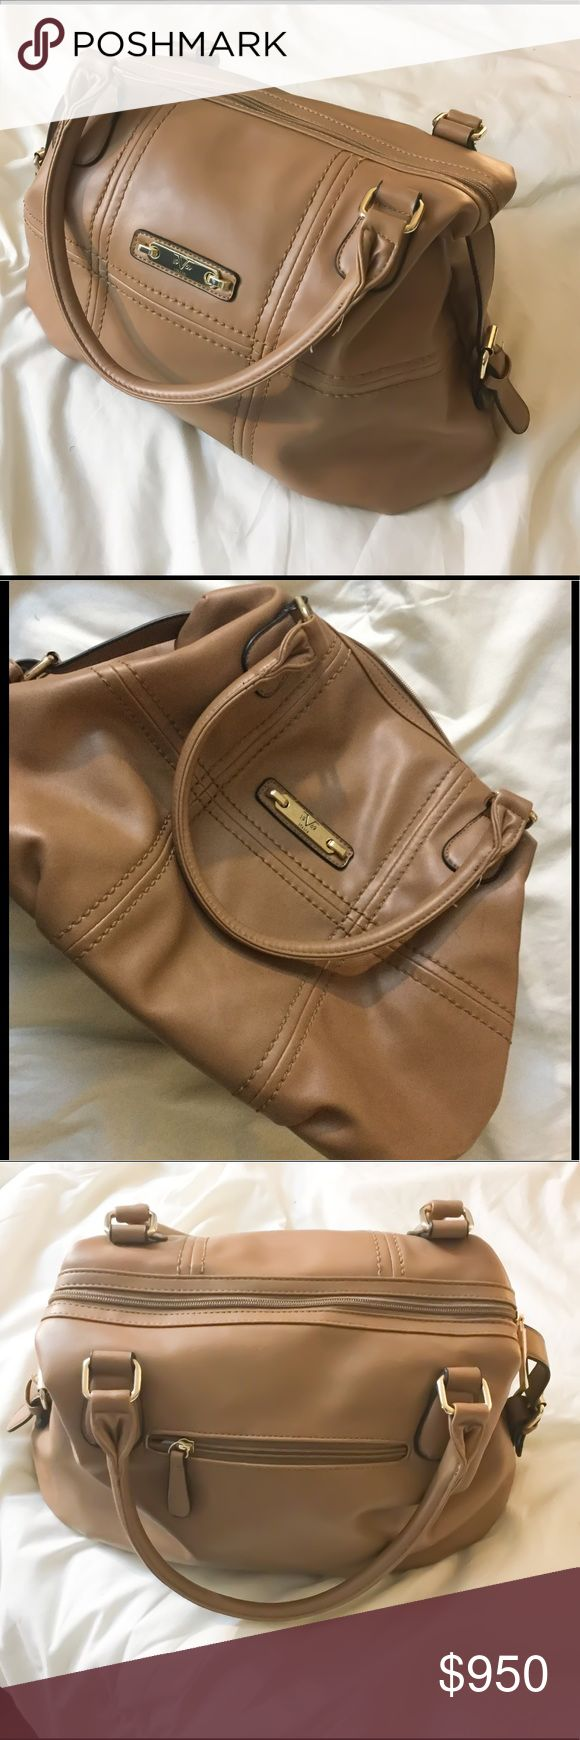 """Auth Versace Doctors Bag 100% authentic Versace brown shoulder bag. This bag is very large approximate measurements: 18"""" x 12"""" x 6.5"""" Gold hardware, serial number tag inside, Versace brand tag in lining. Features outer zip pocket, inner zip pocket and two slip pockets. Zipper closure w Versace zipper hang tag. This bag is in fantastic, mint condition, not a single flaw on it. Posh rules only, no PayPal, no lowball offers. Serious buyers only. Reasonable offers okay. Happy Poshing! 🖤 Versace…"""